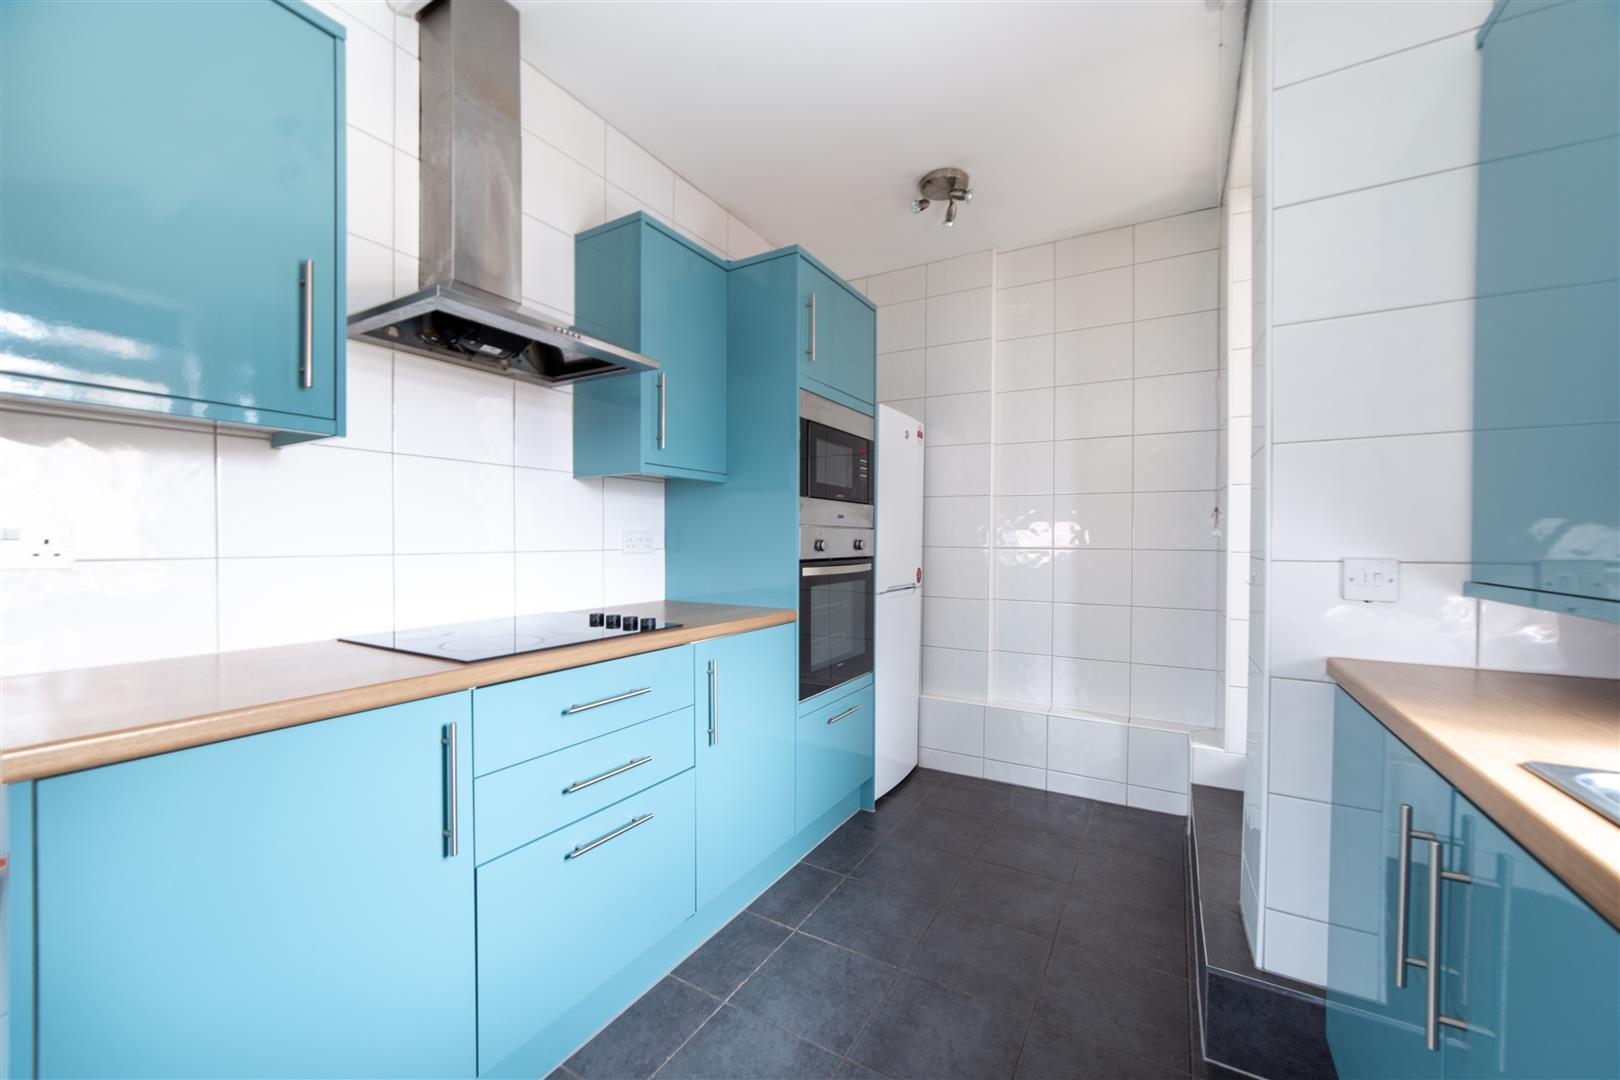 3 bed flat to rent in Newcastle Upon Tyne, NE6 5SX  - Property Image 7